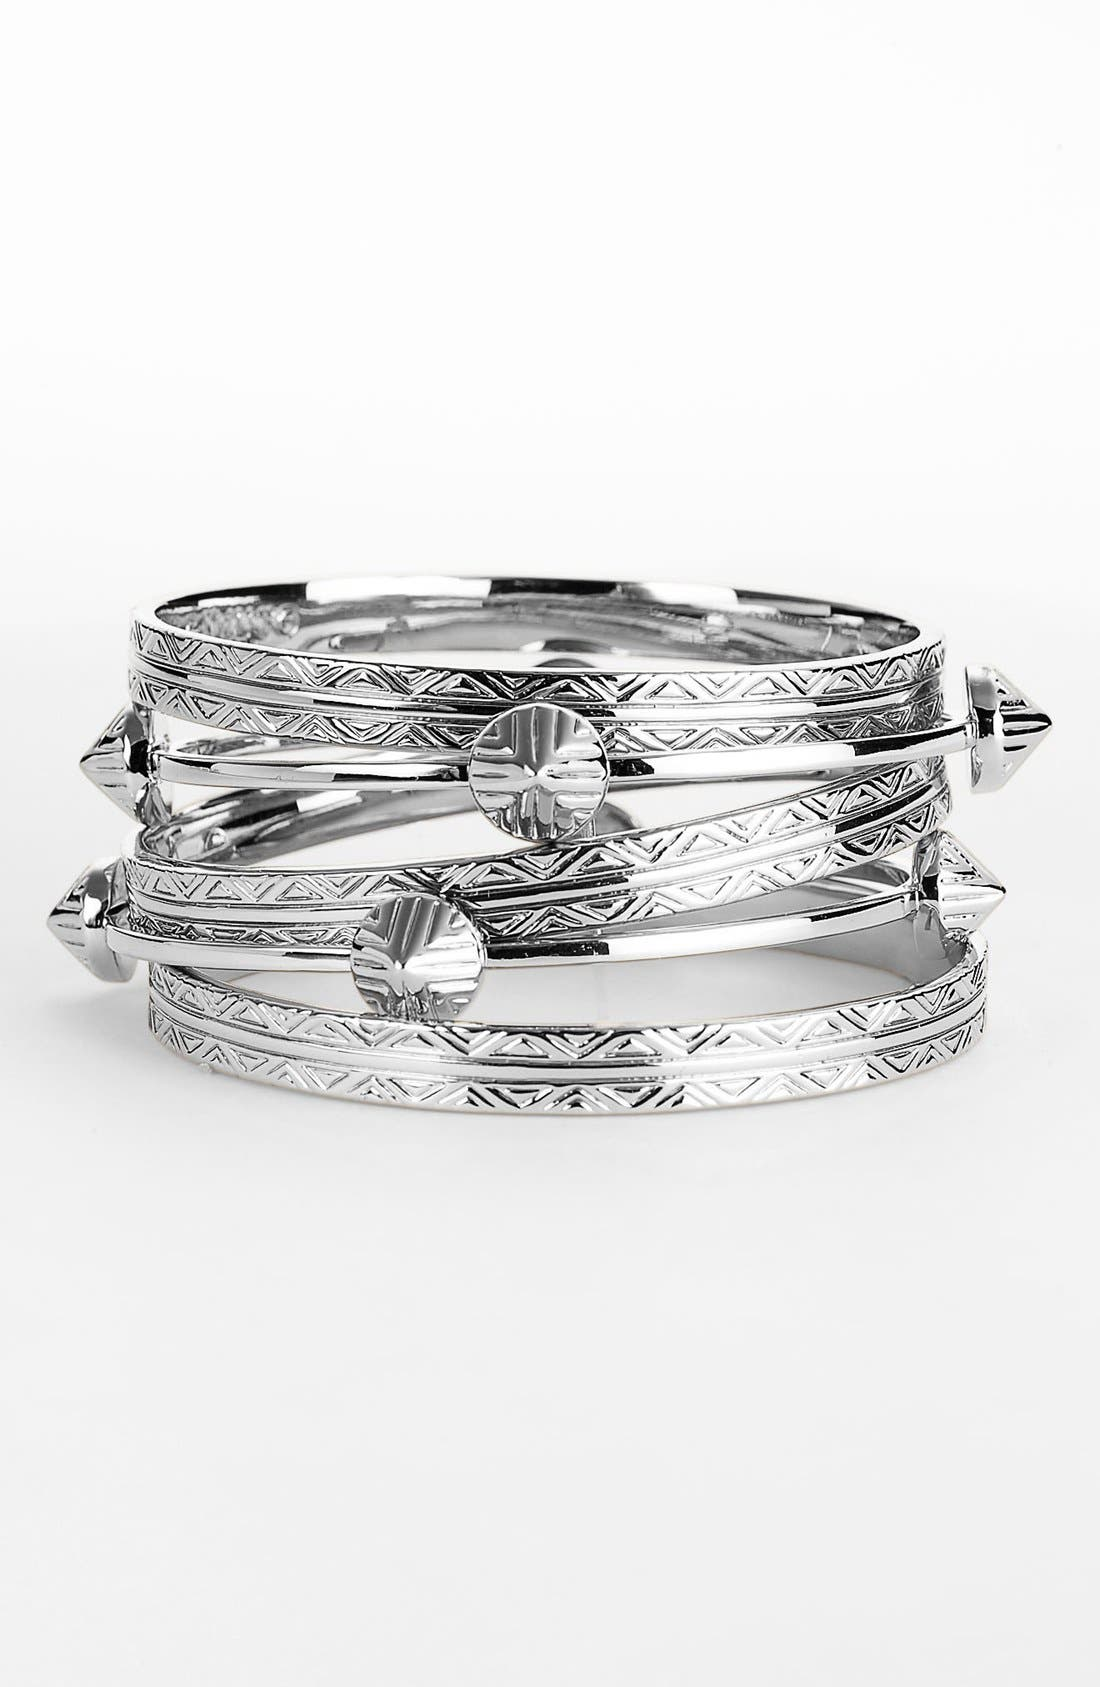 Main Image - Vince Camuto 'Tribal Fusion' Bangles (Set of 5)